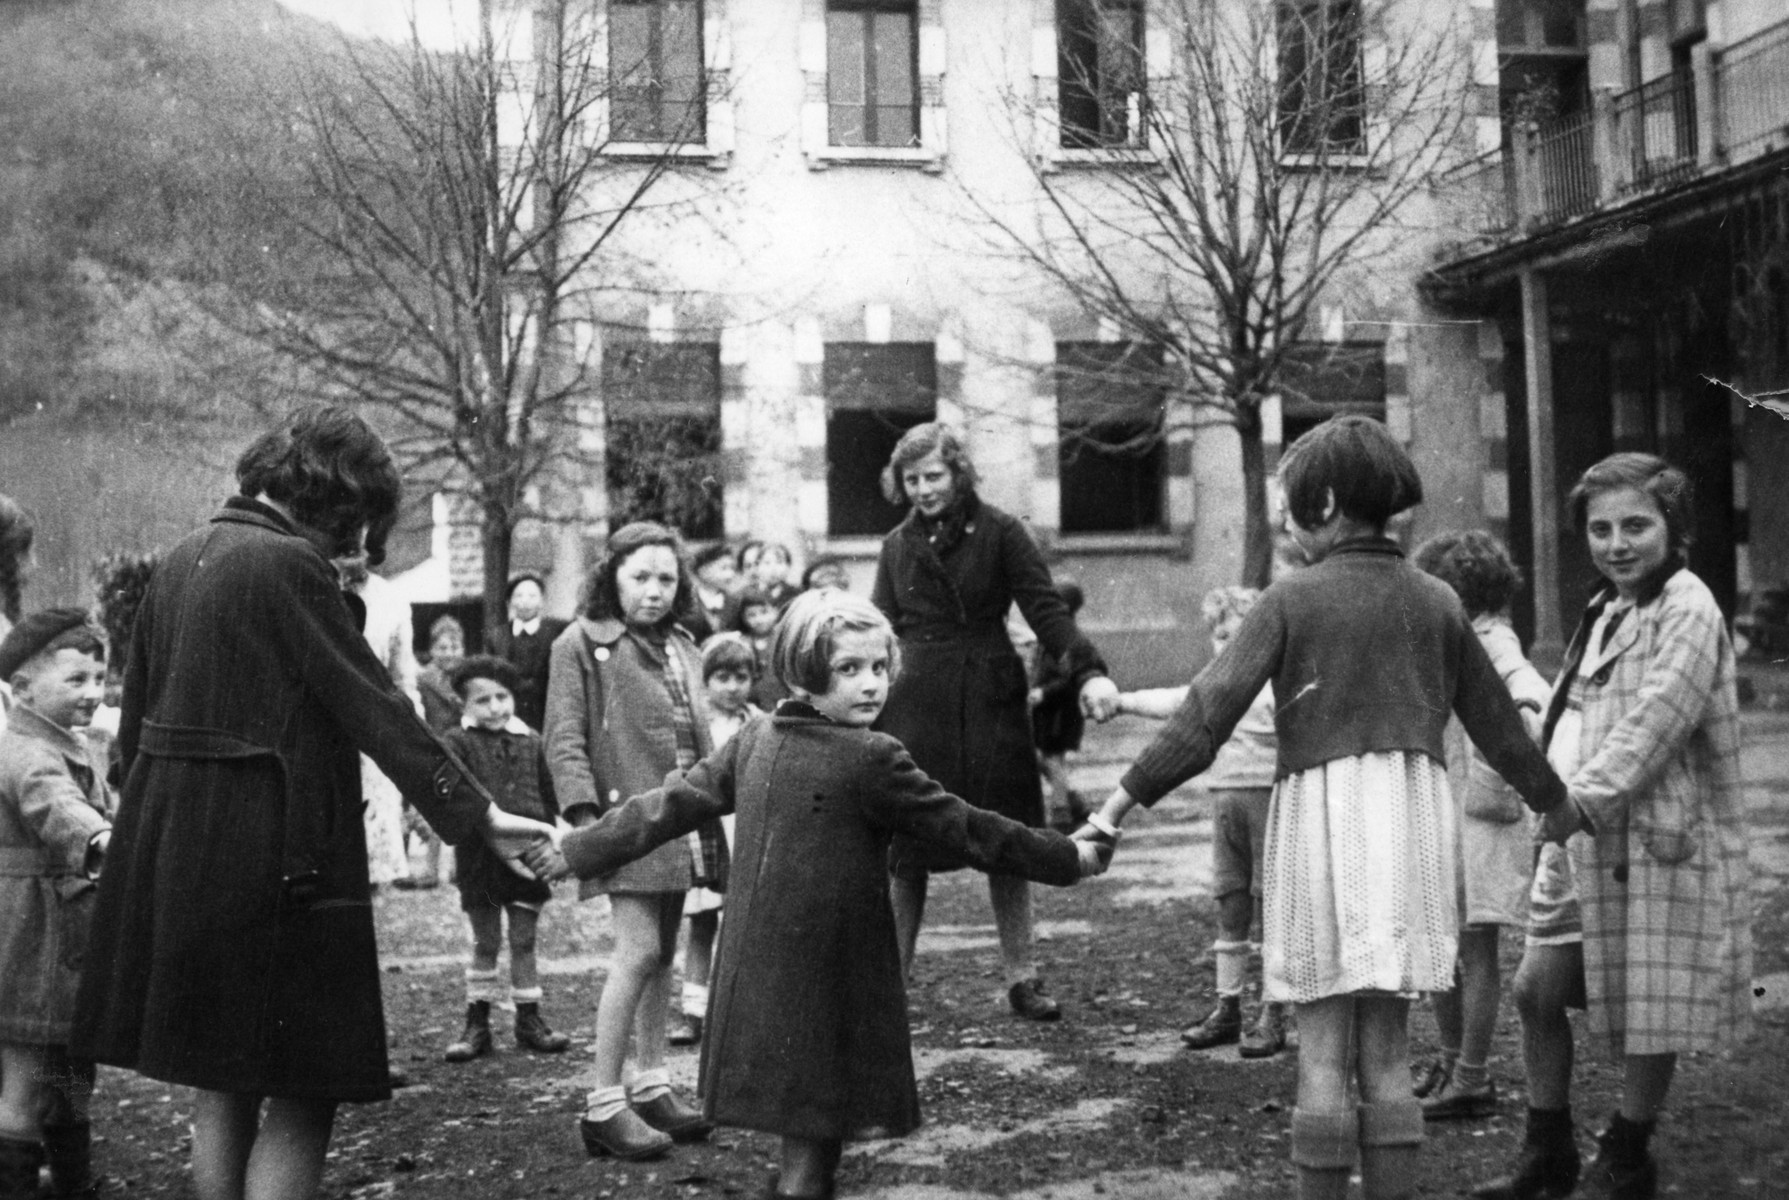 A group of children hold hands during an outside game at Aspet.